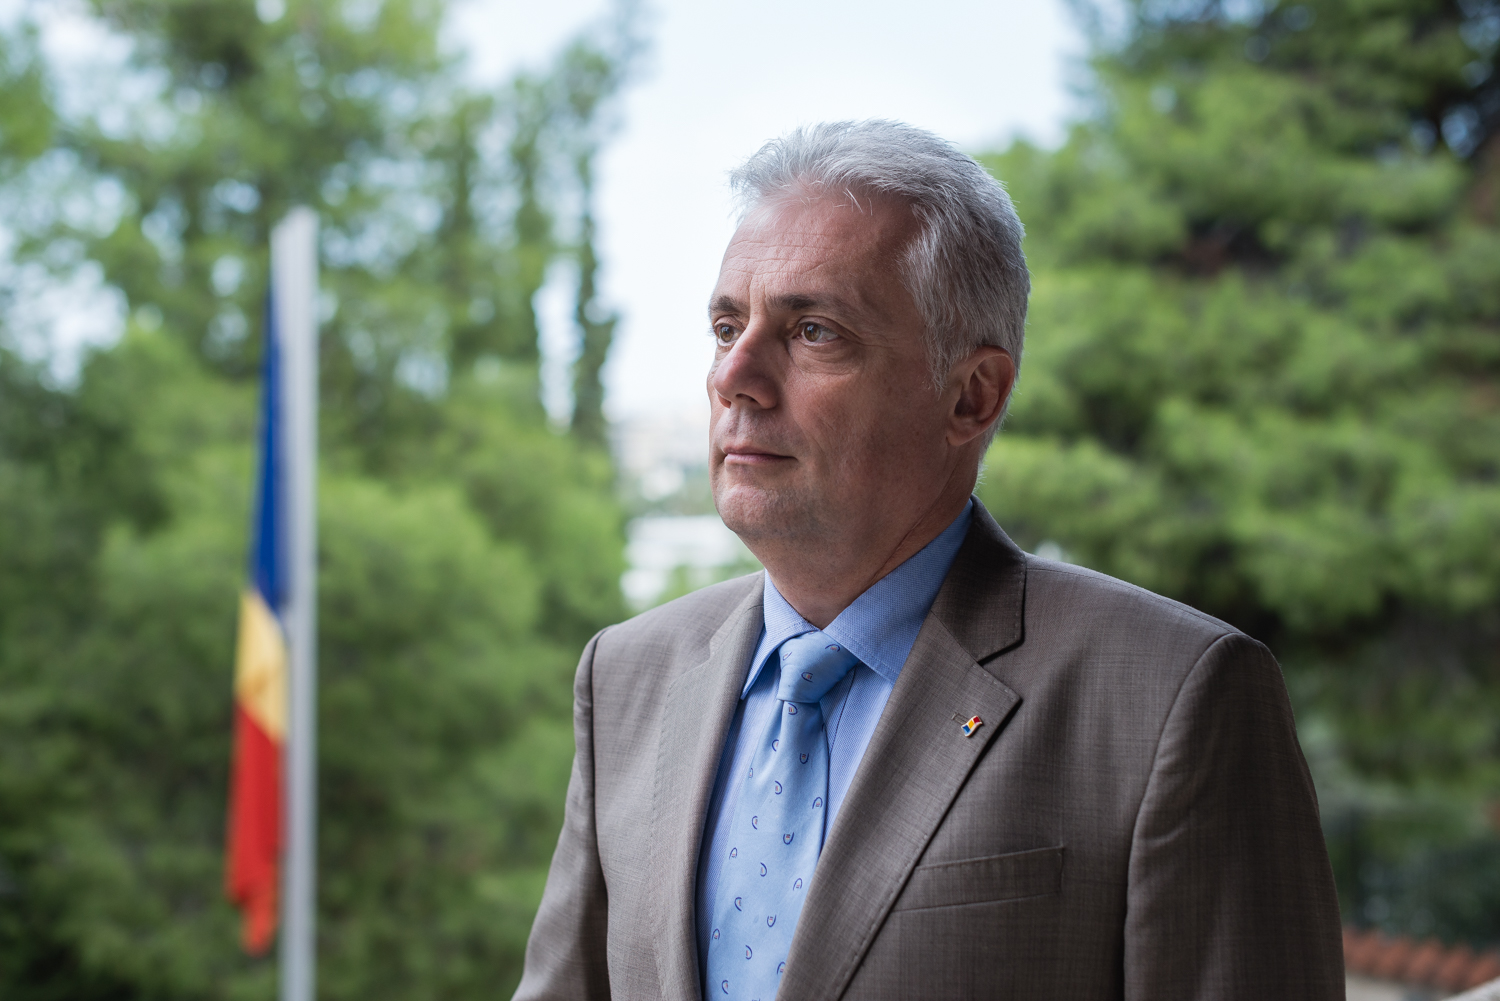 IBNA/Interview with the Ambassador of Romania, Lucian Fătu